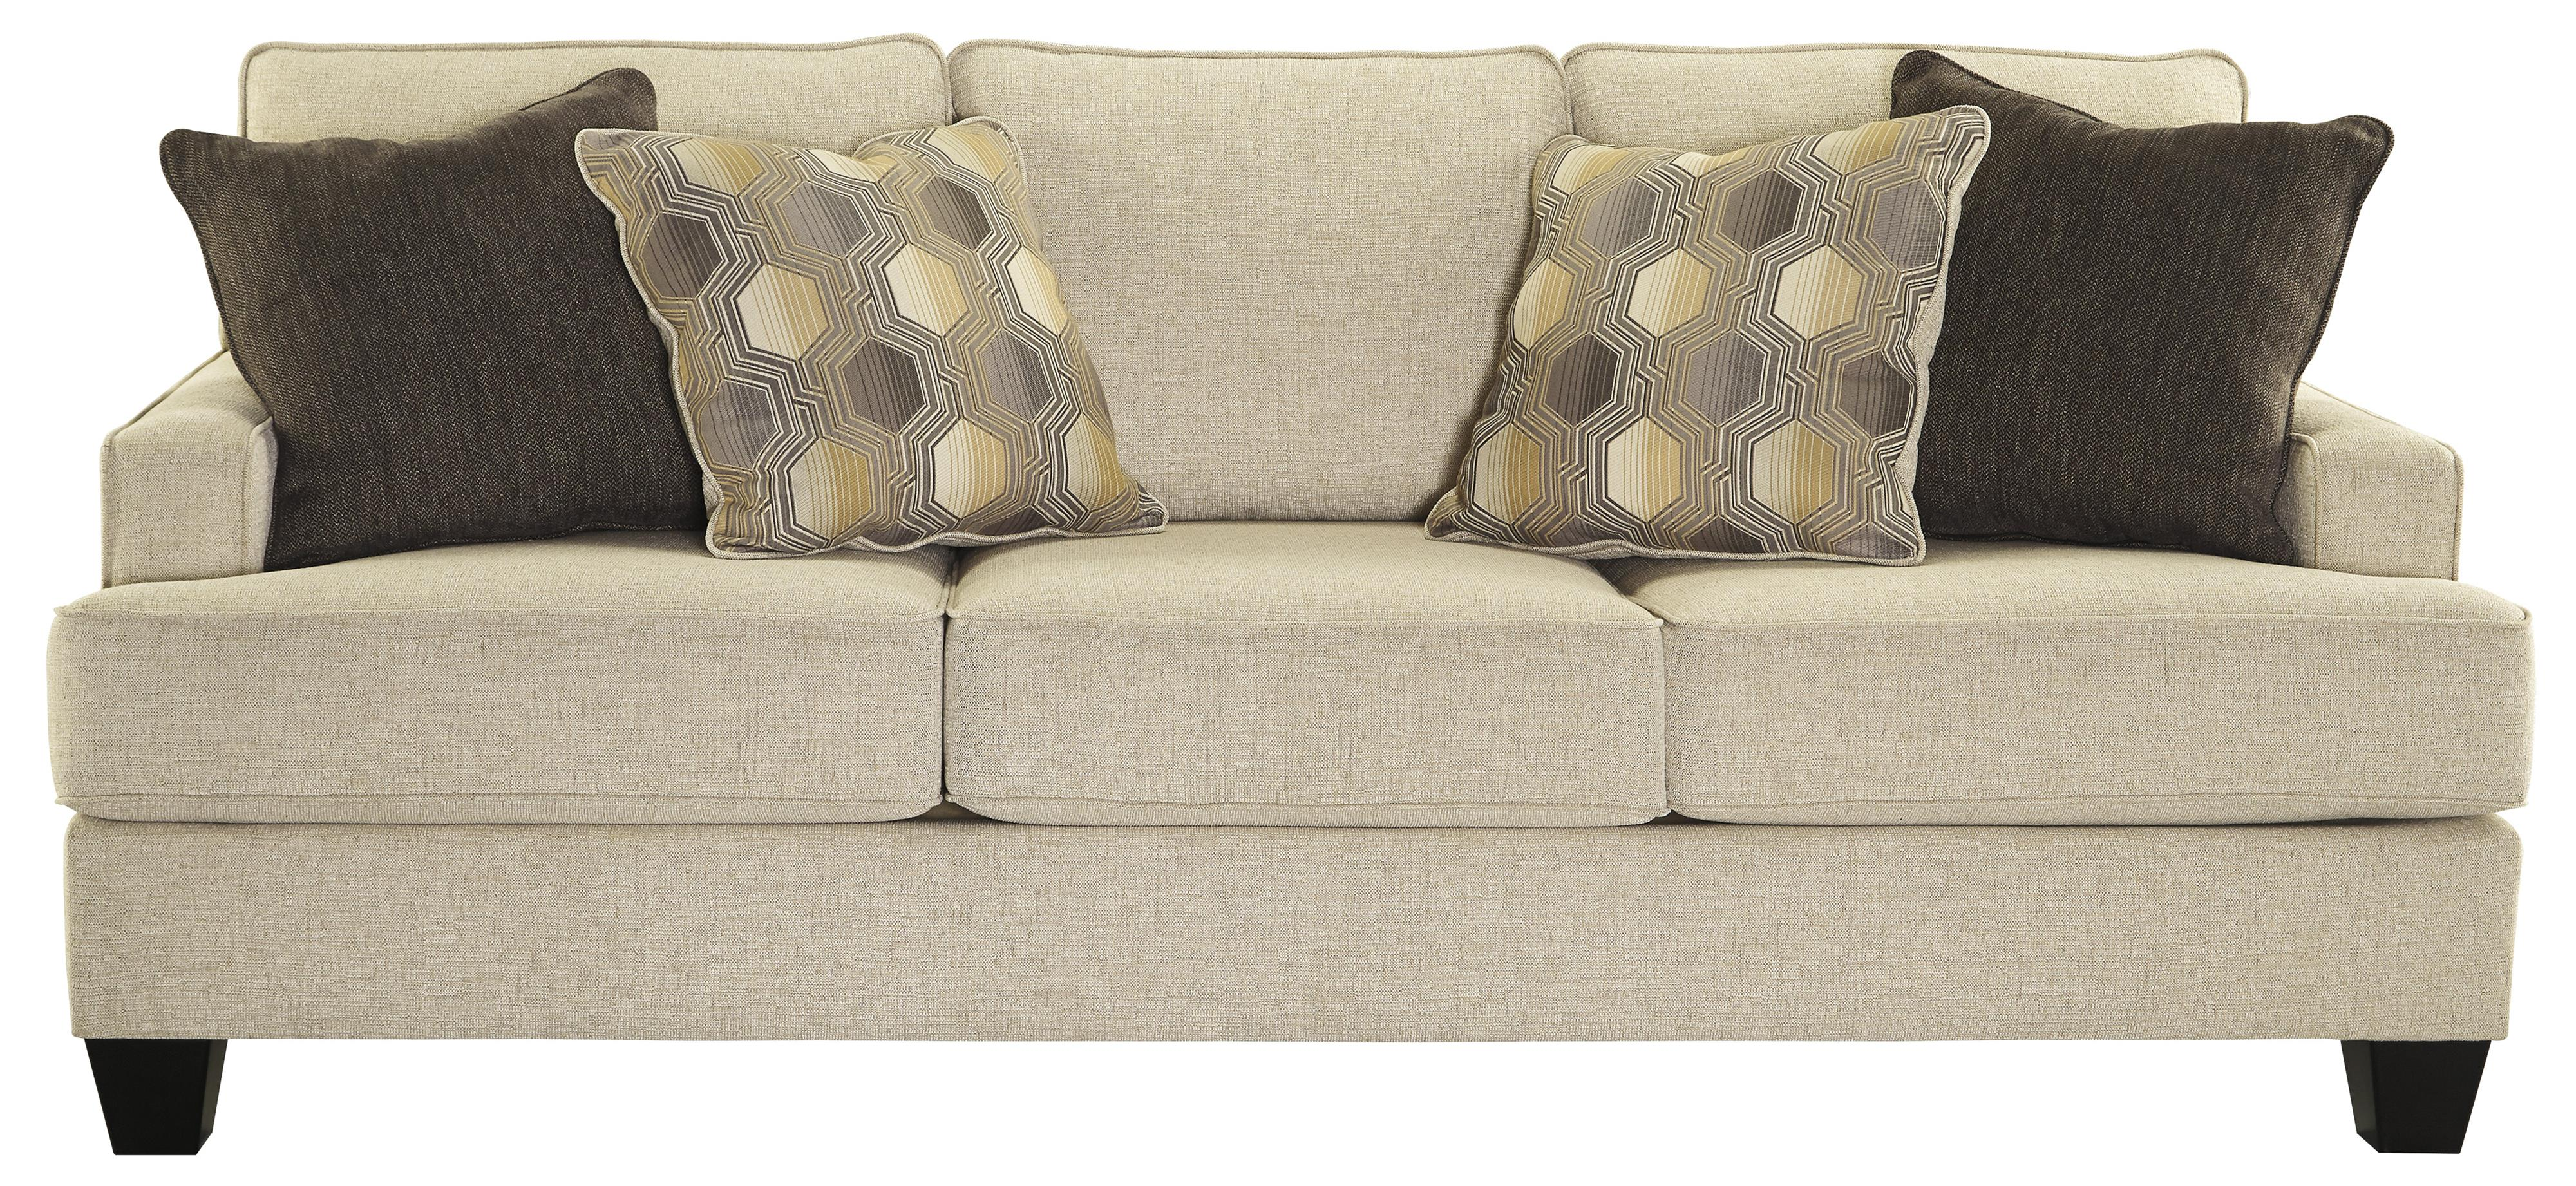 Exceptionnel Benchcraft Brielyn Queen Sofa Sleeper   Item Number: 6140239